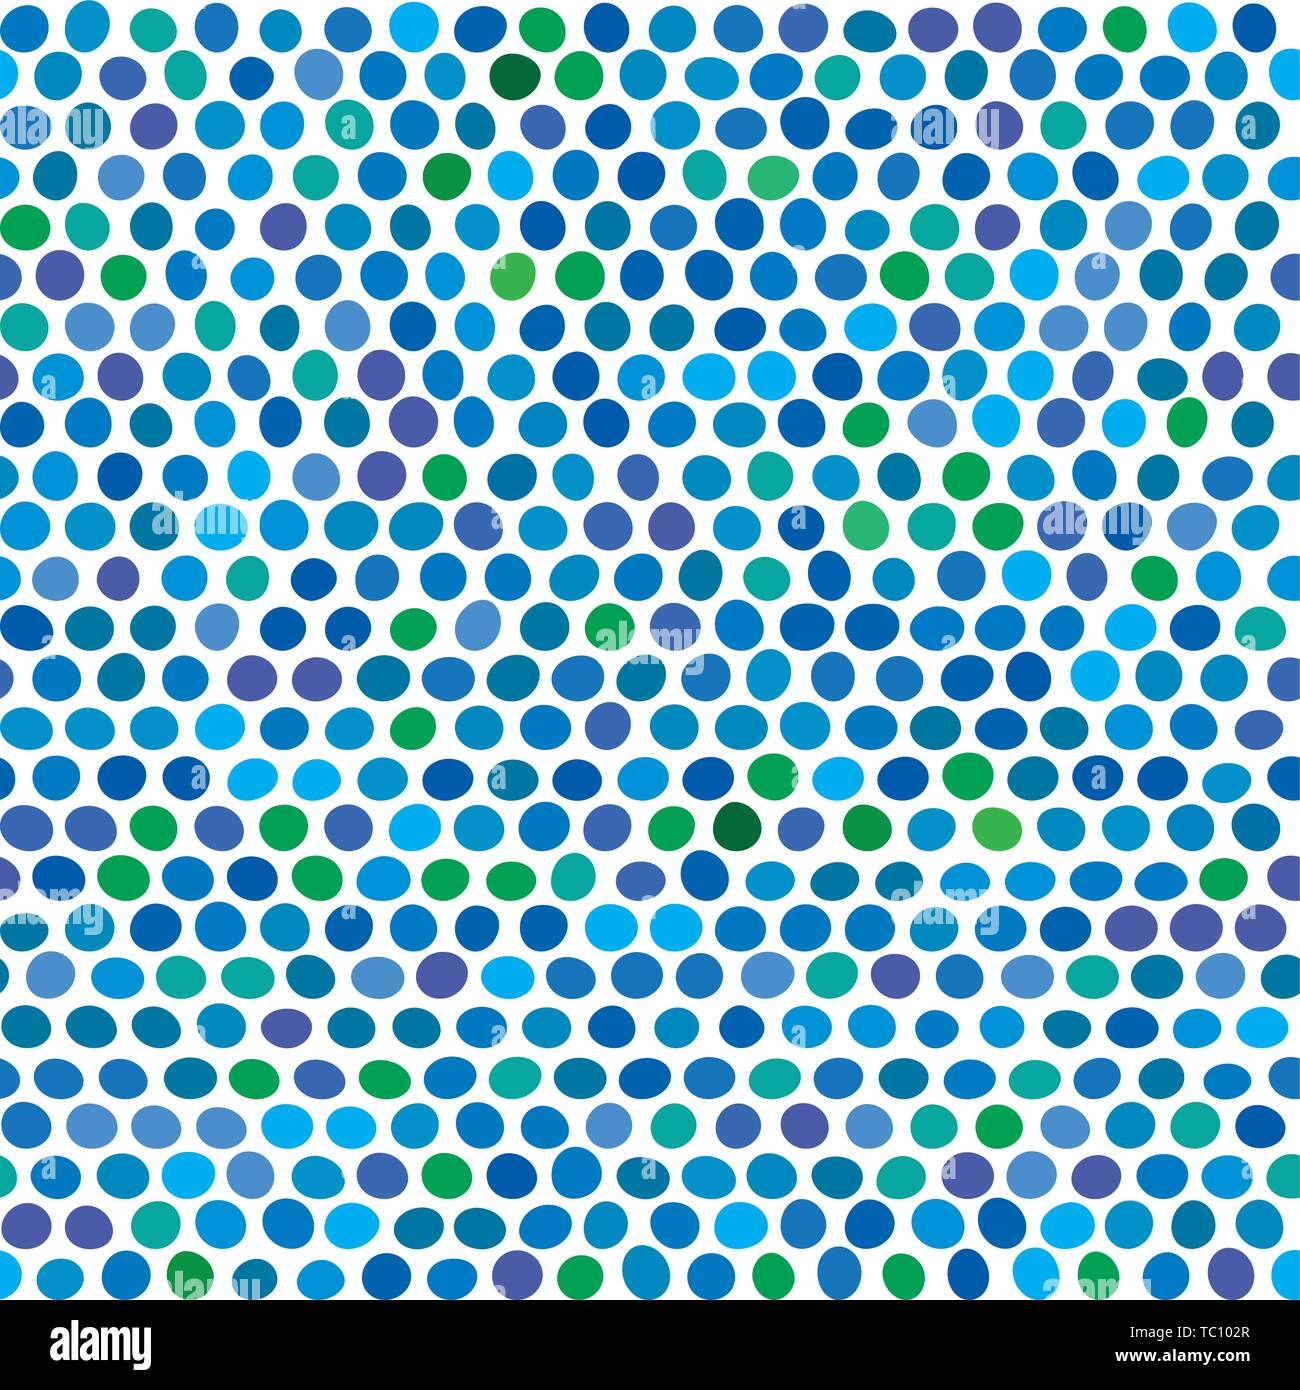 Vector illustration. Seamless background of blue and green dots. - Stock Vector